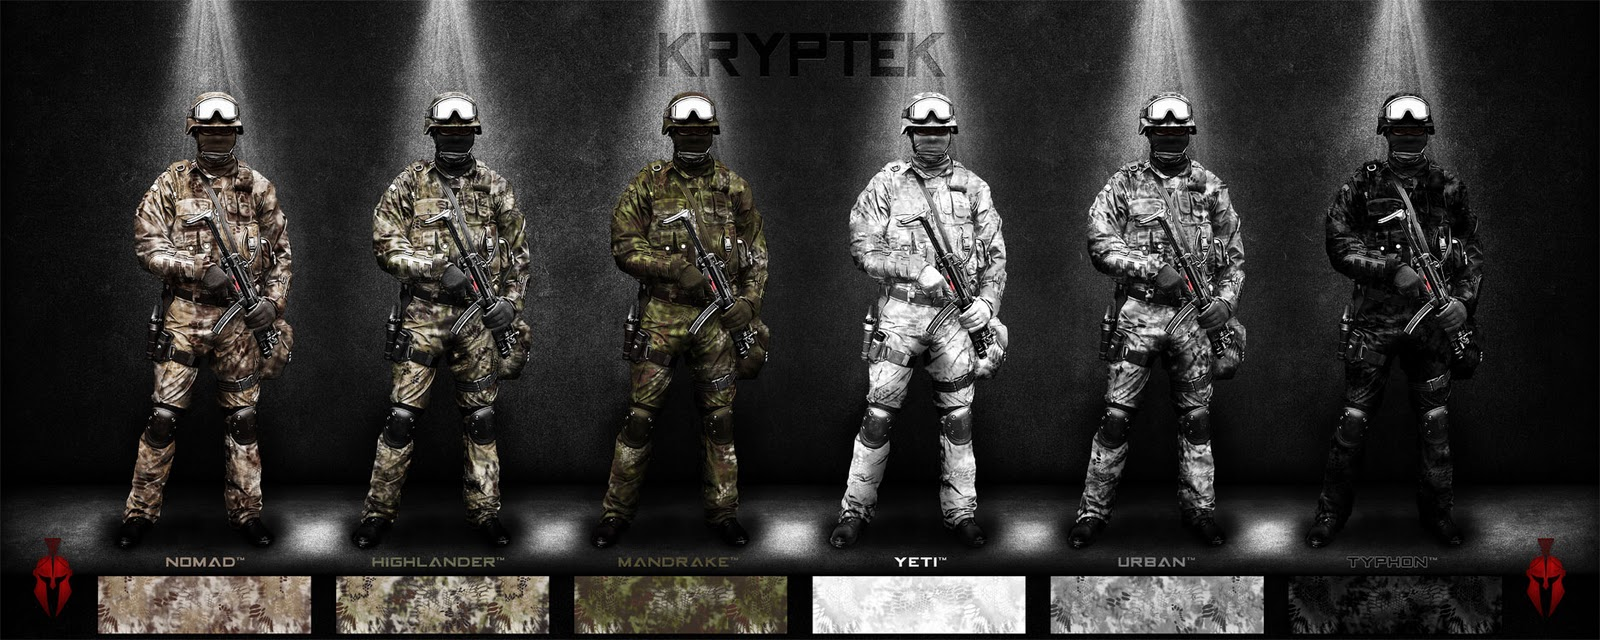 Camo the Army is Considering. Kryptek+camo